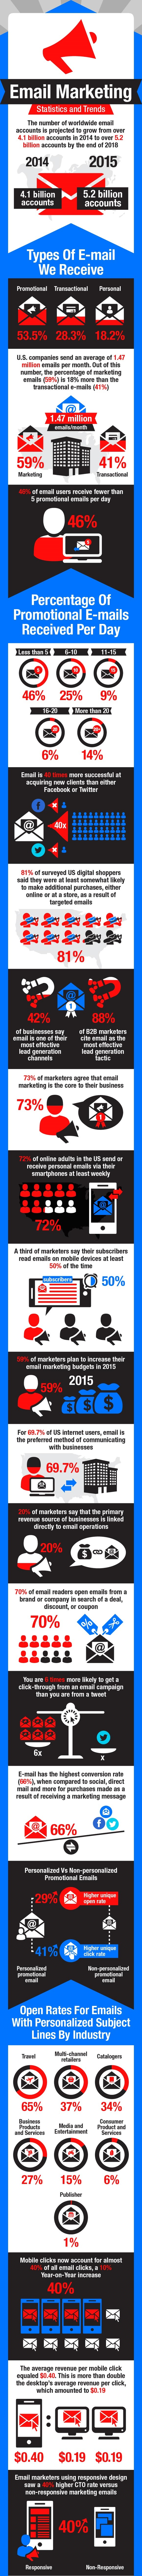 email-marketing-statistics.jpg